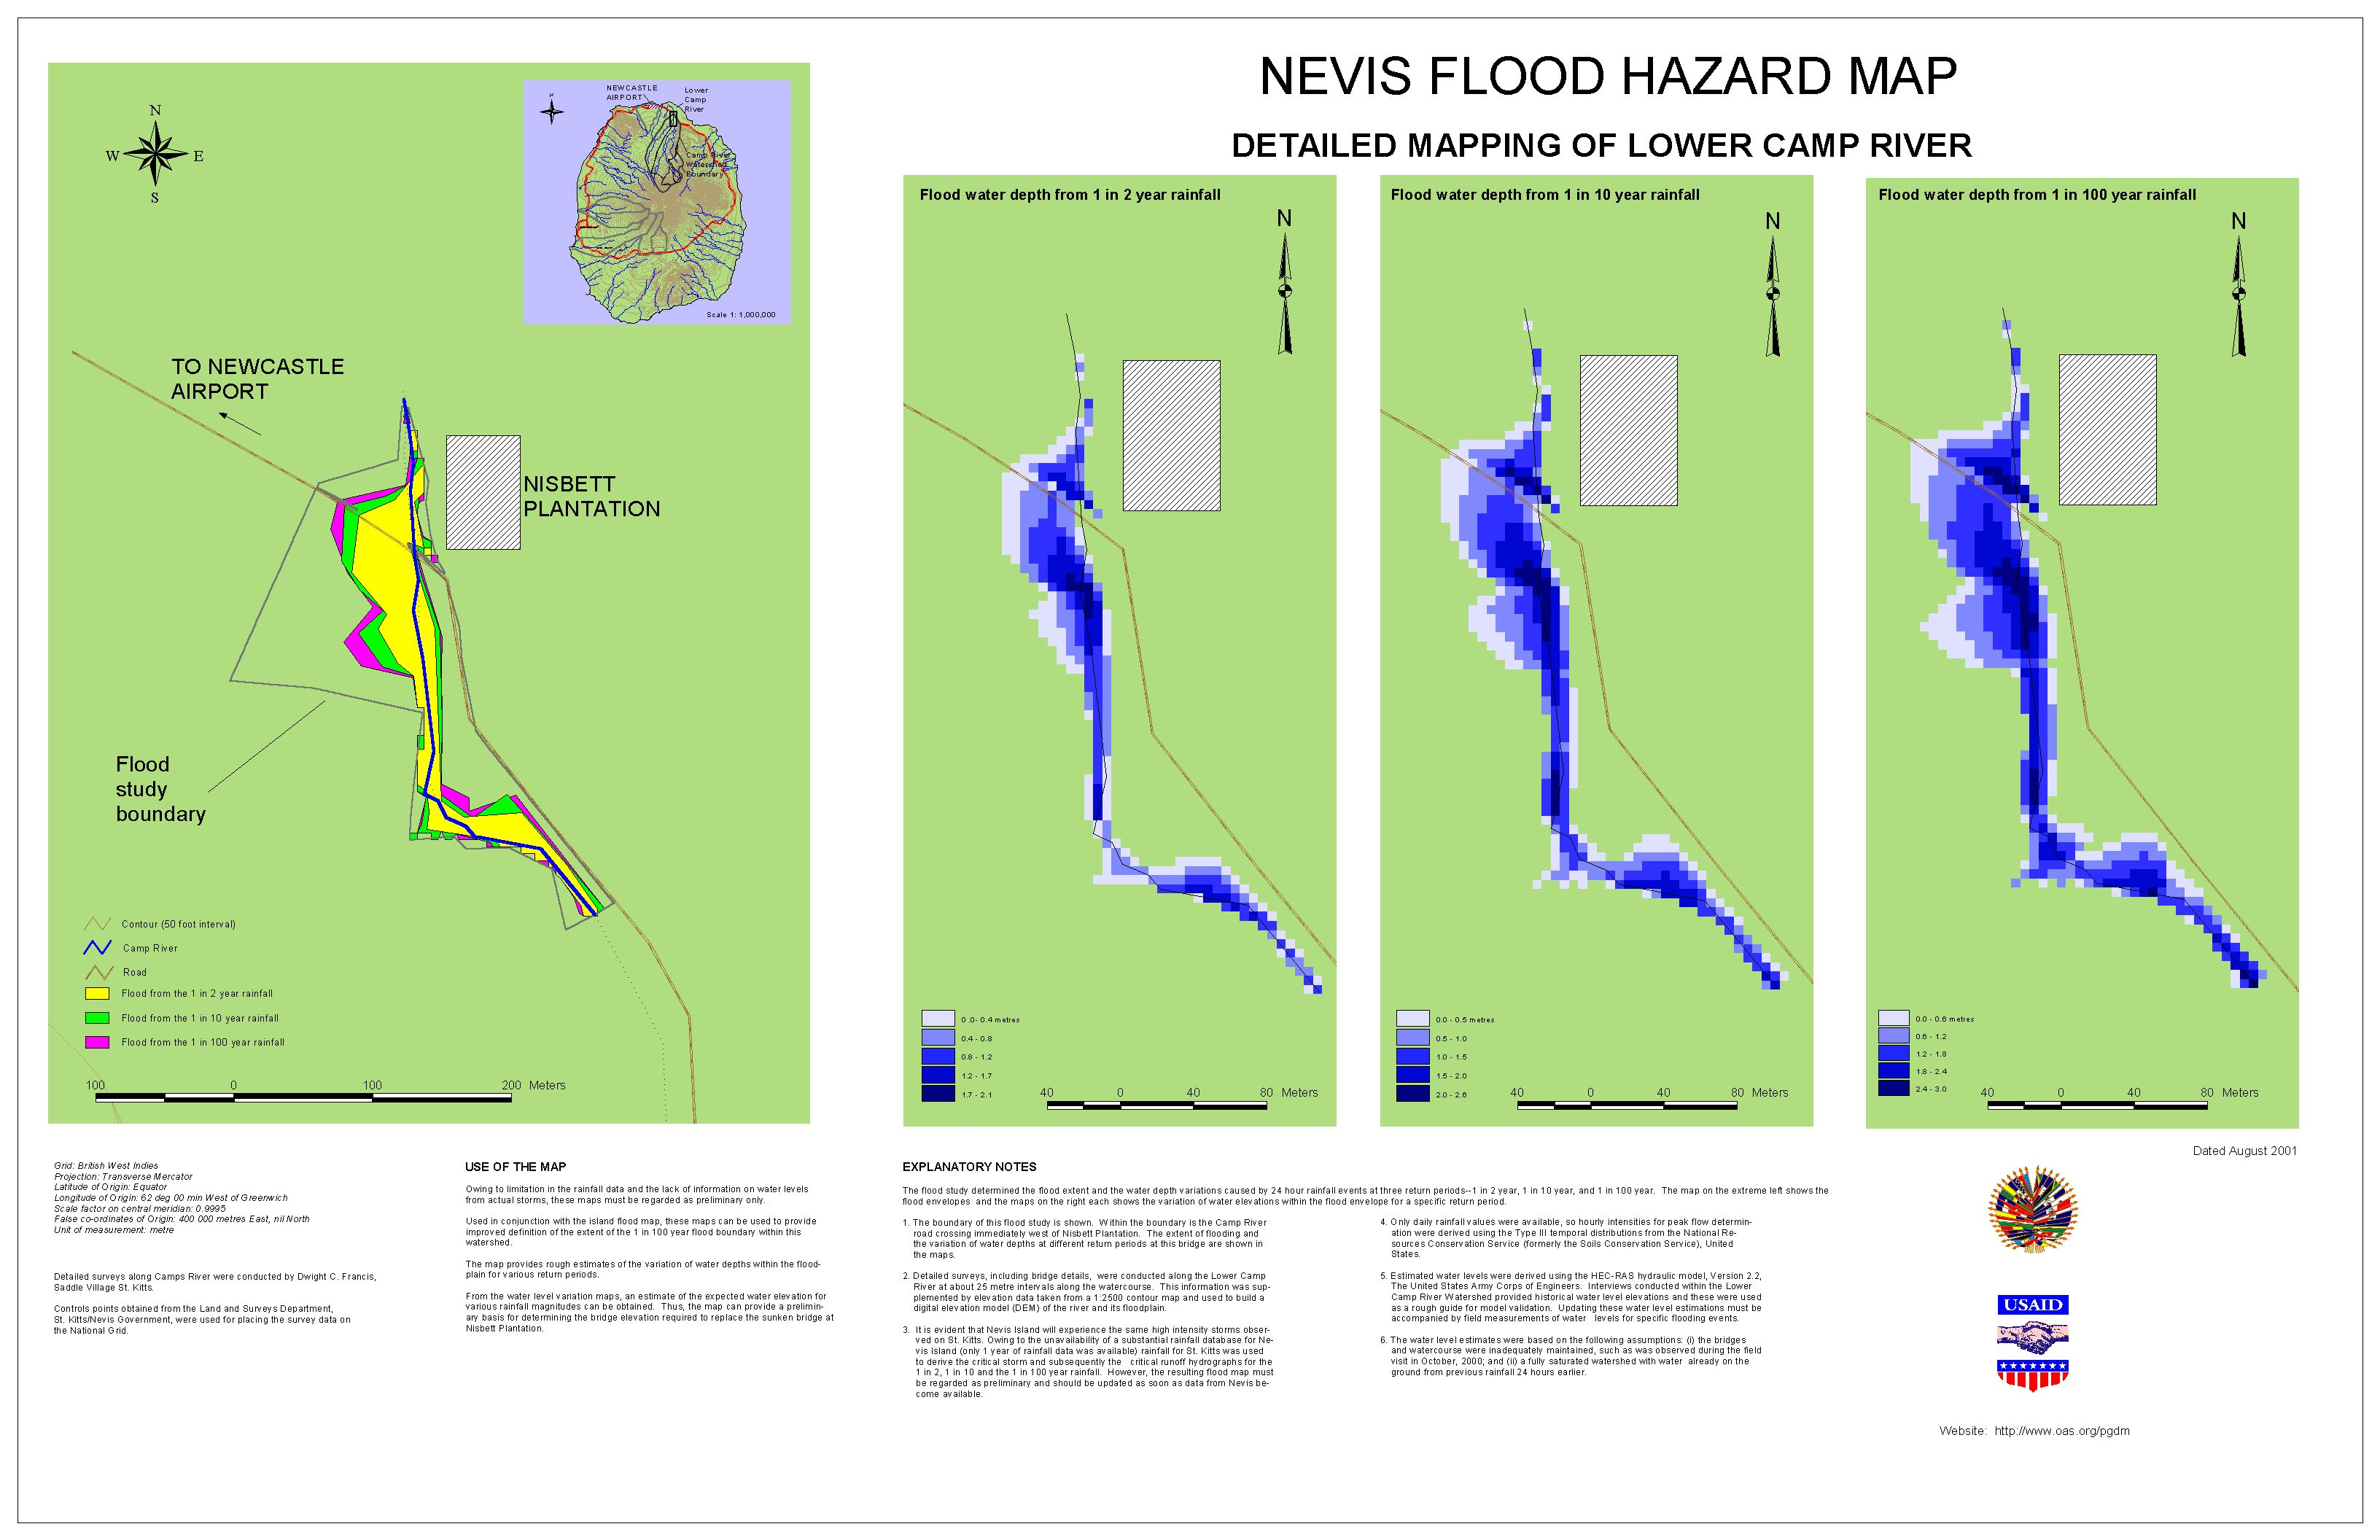 PGDM Inland Flooding Hazard Map Camps River Nevis - Flood hazard boundary map